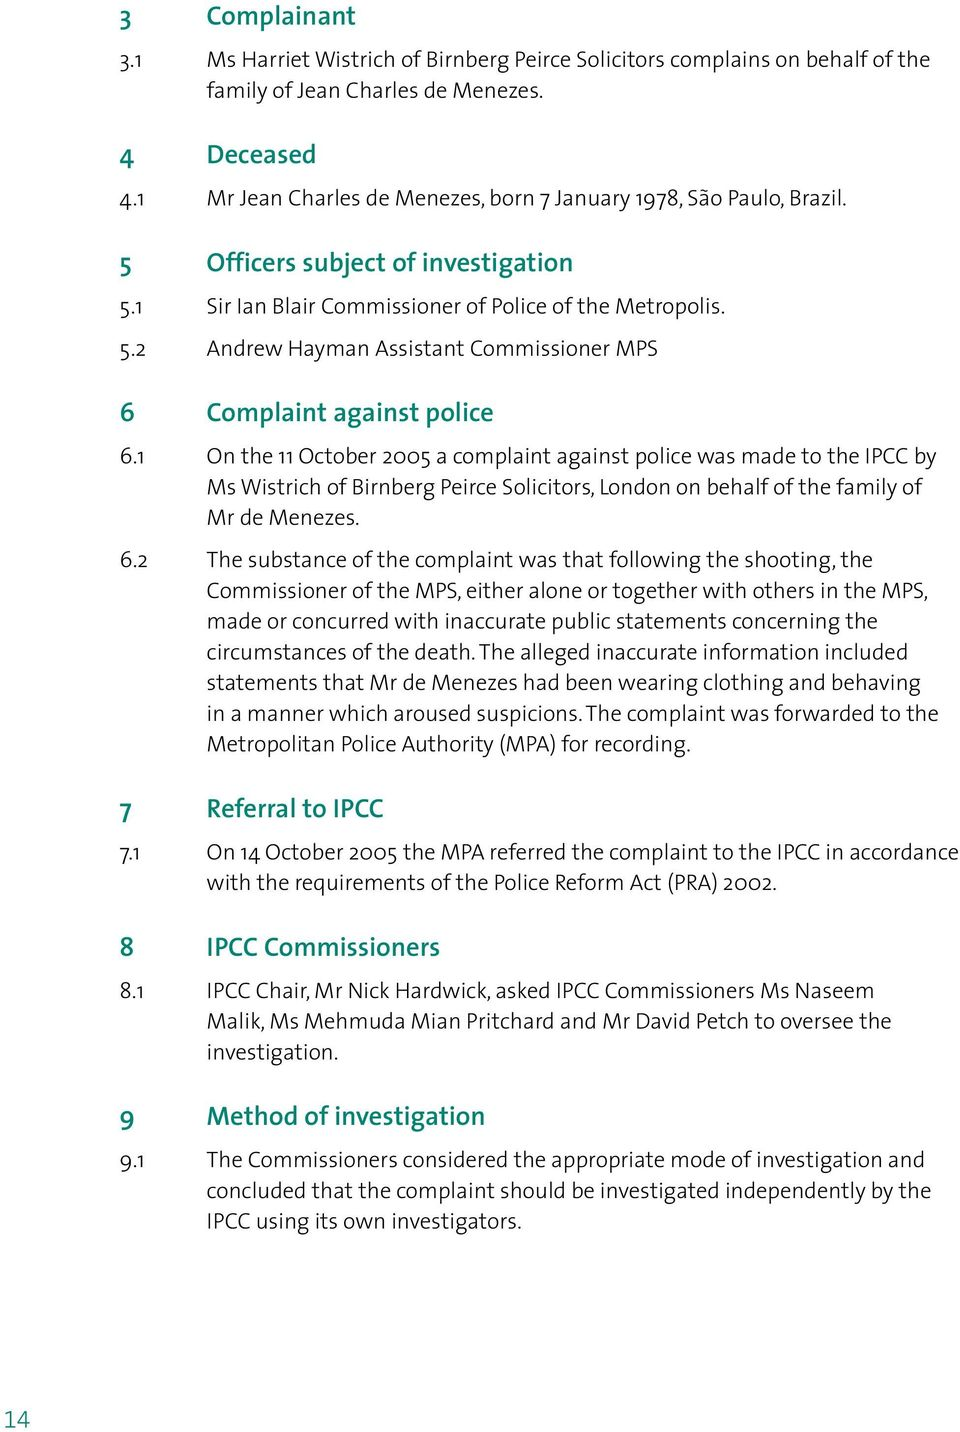 1 On the 11 October 2005 a complaint against police was made to the IPCC by Ms Wistrich of Birnberg Peirce Solicitors, London on behalf of the family of Mr de Menezes. 6.